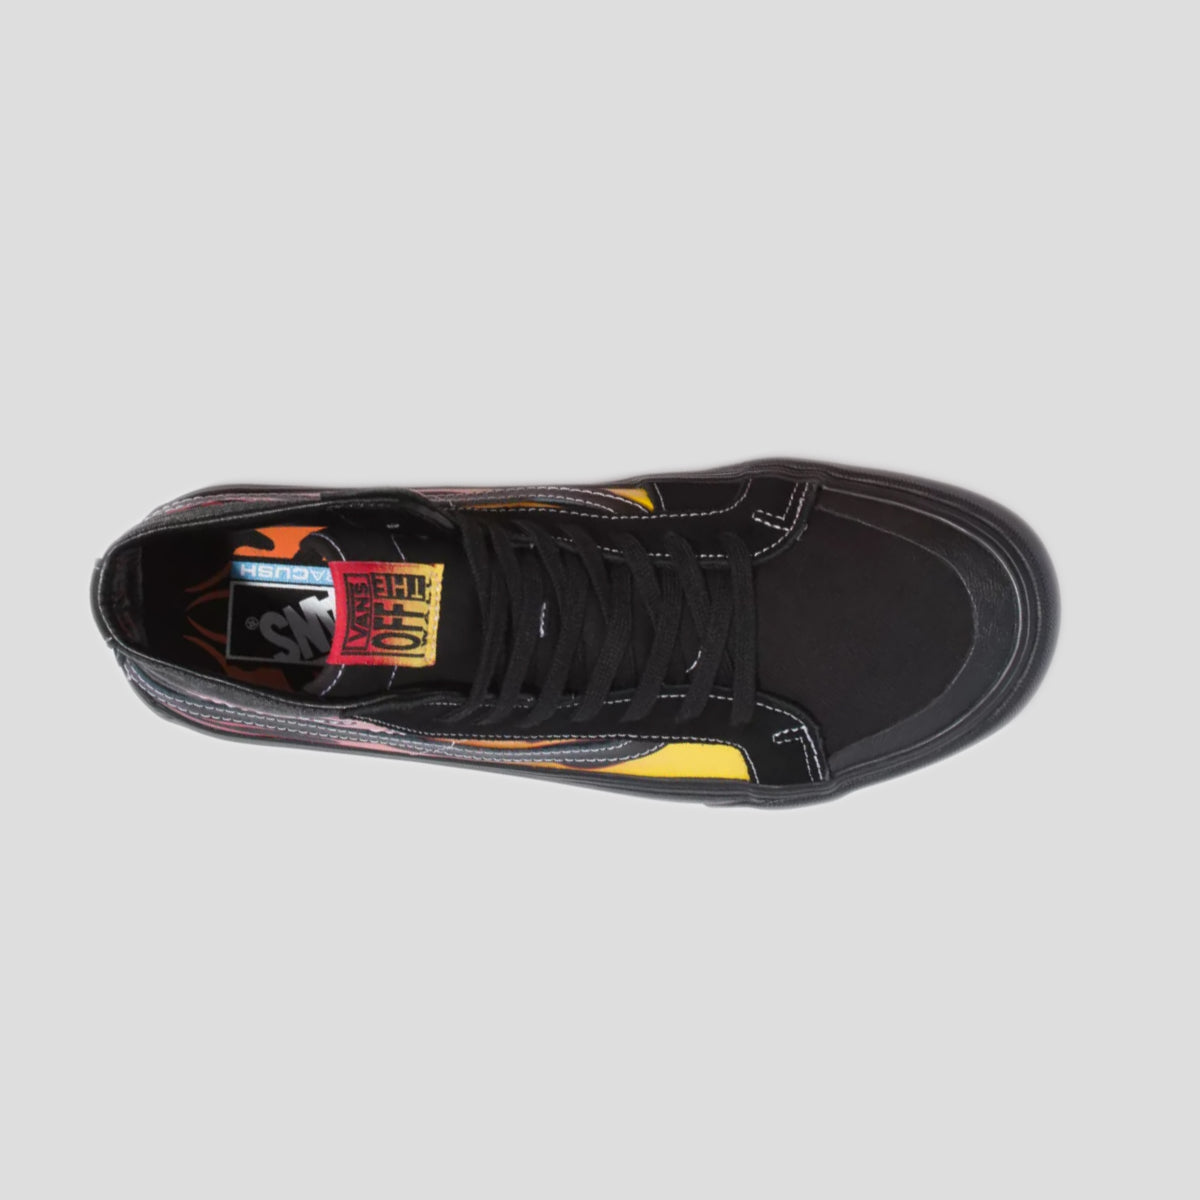 "VANS DRAG BOARD CO ""SK8 HI DECON SF"" SHOE"